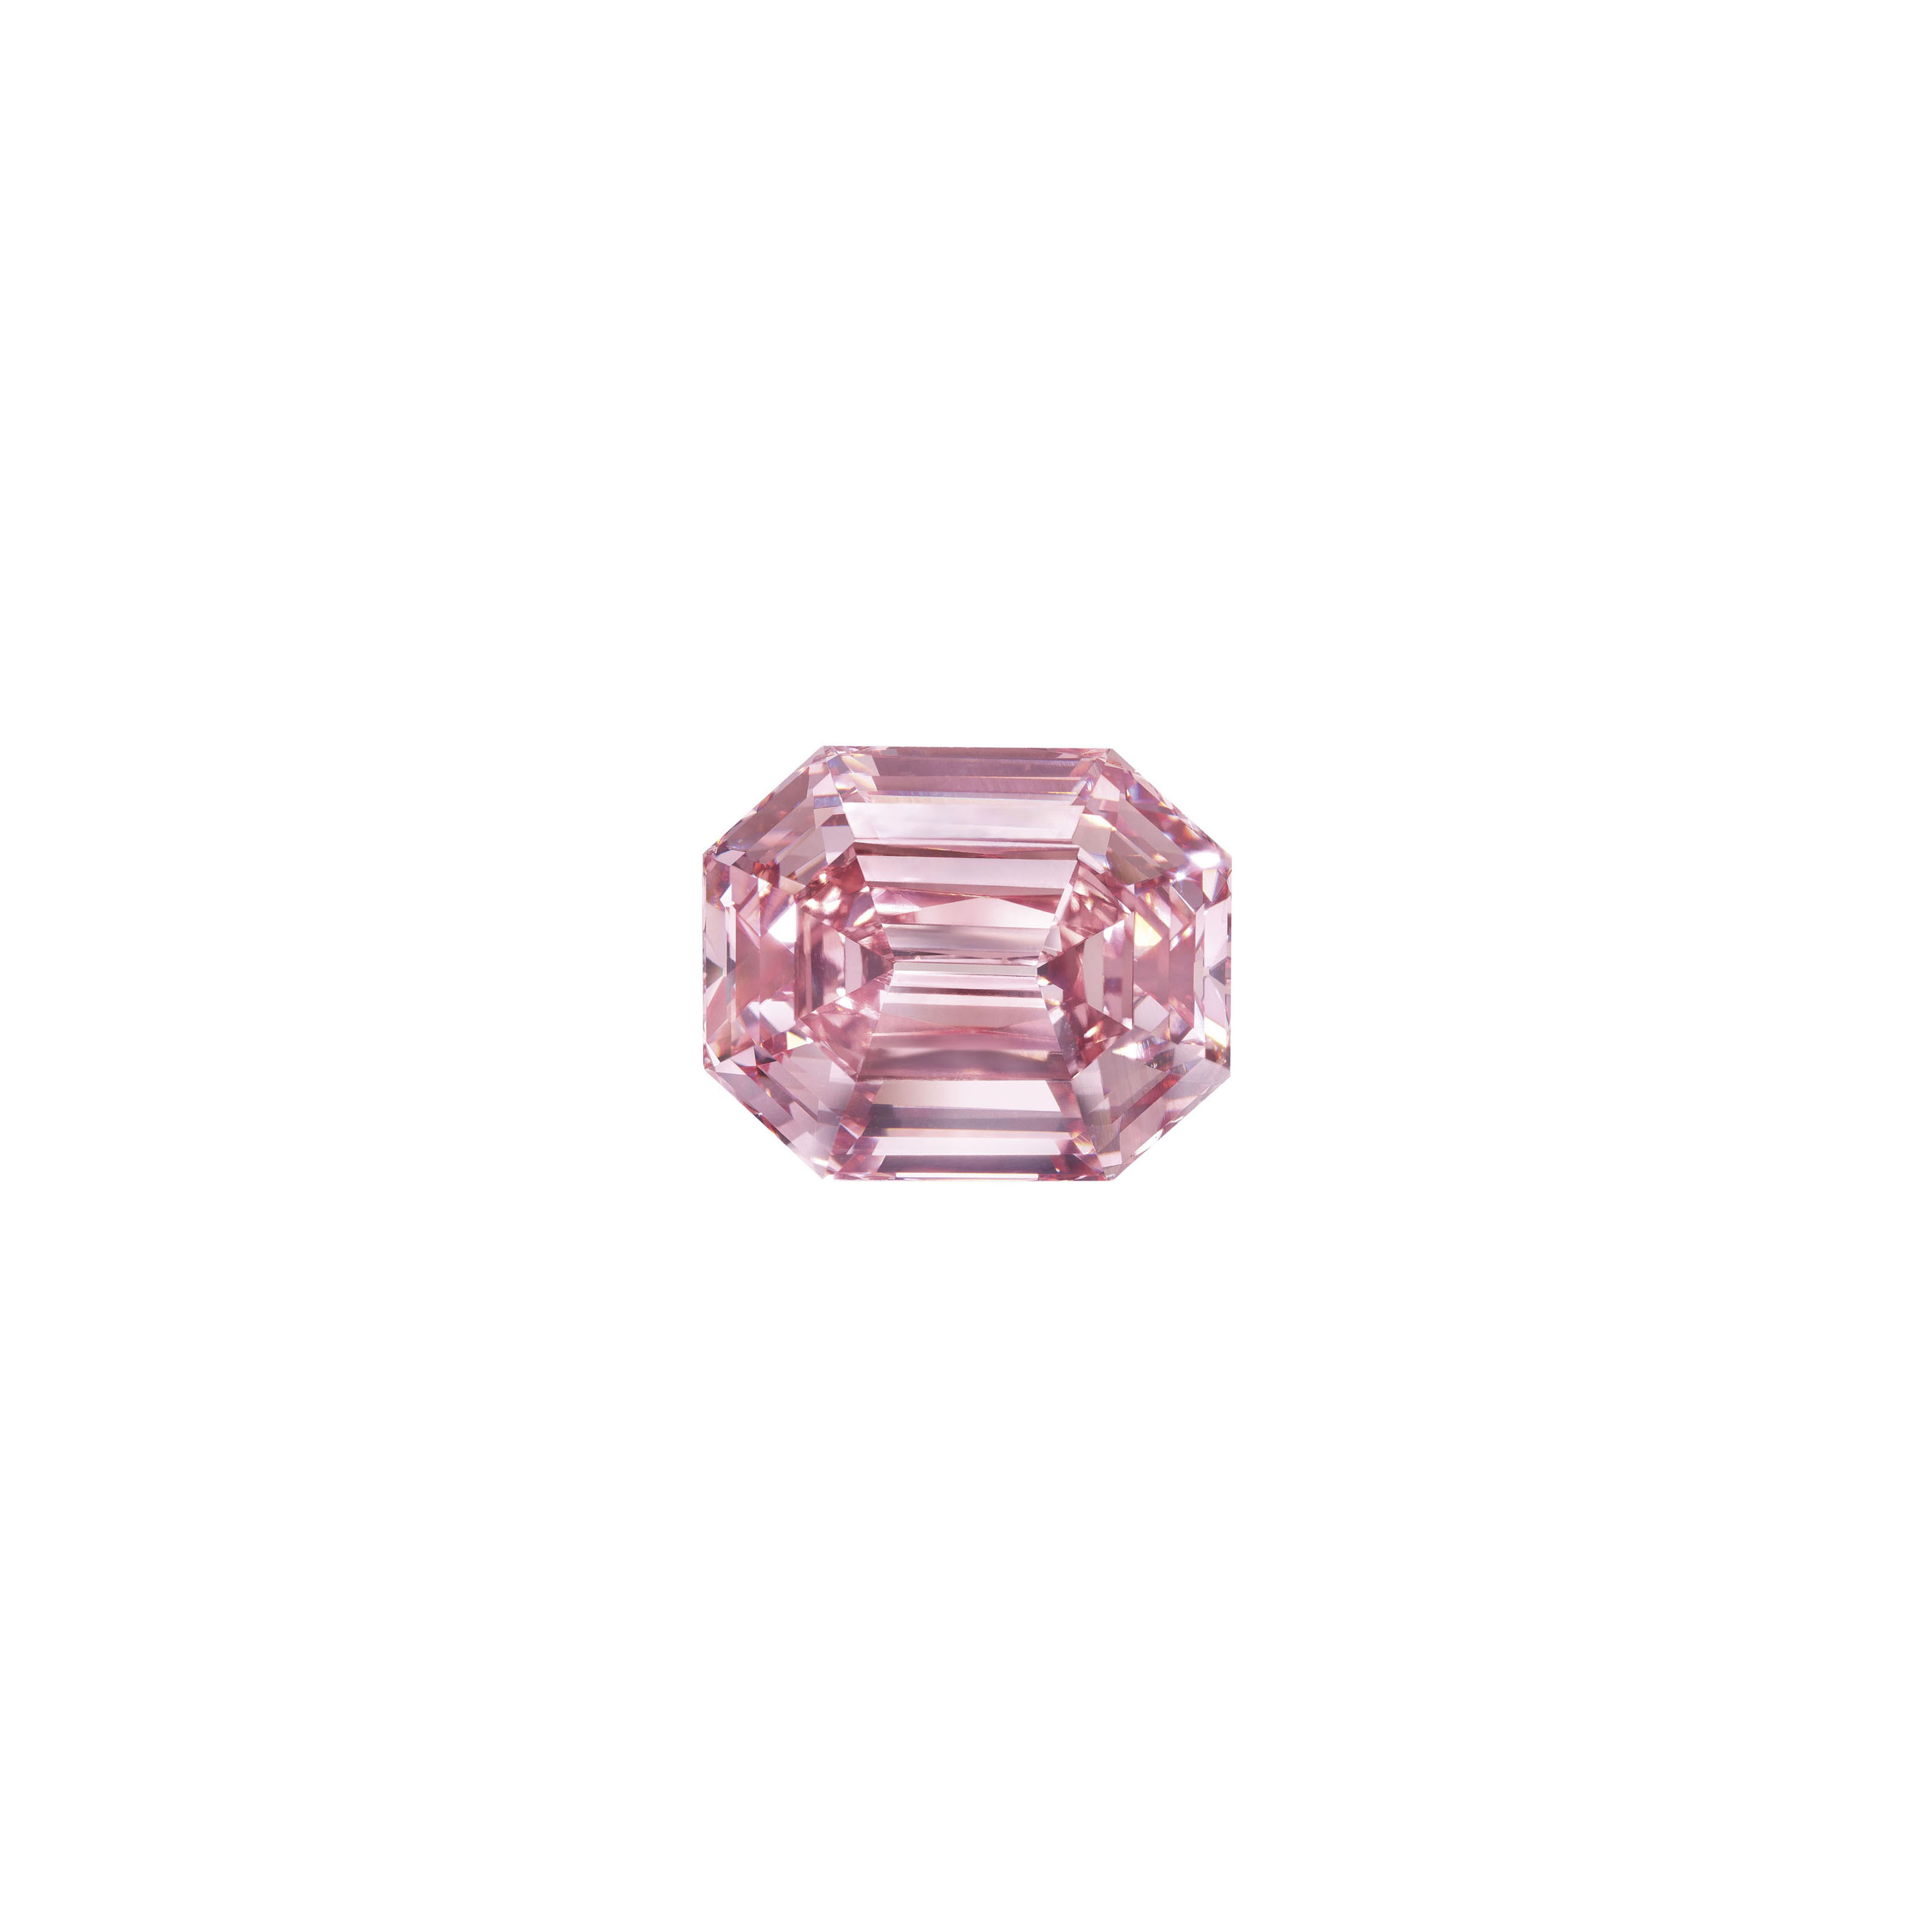 THE PINK LEGACY A SENSATIONAL COLOURED DIAMOND RING